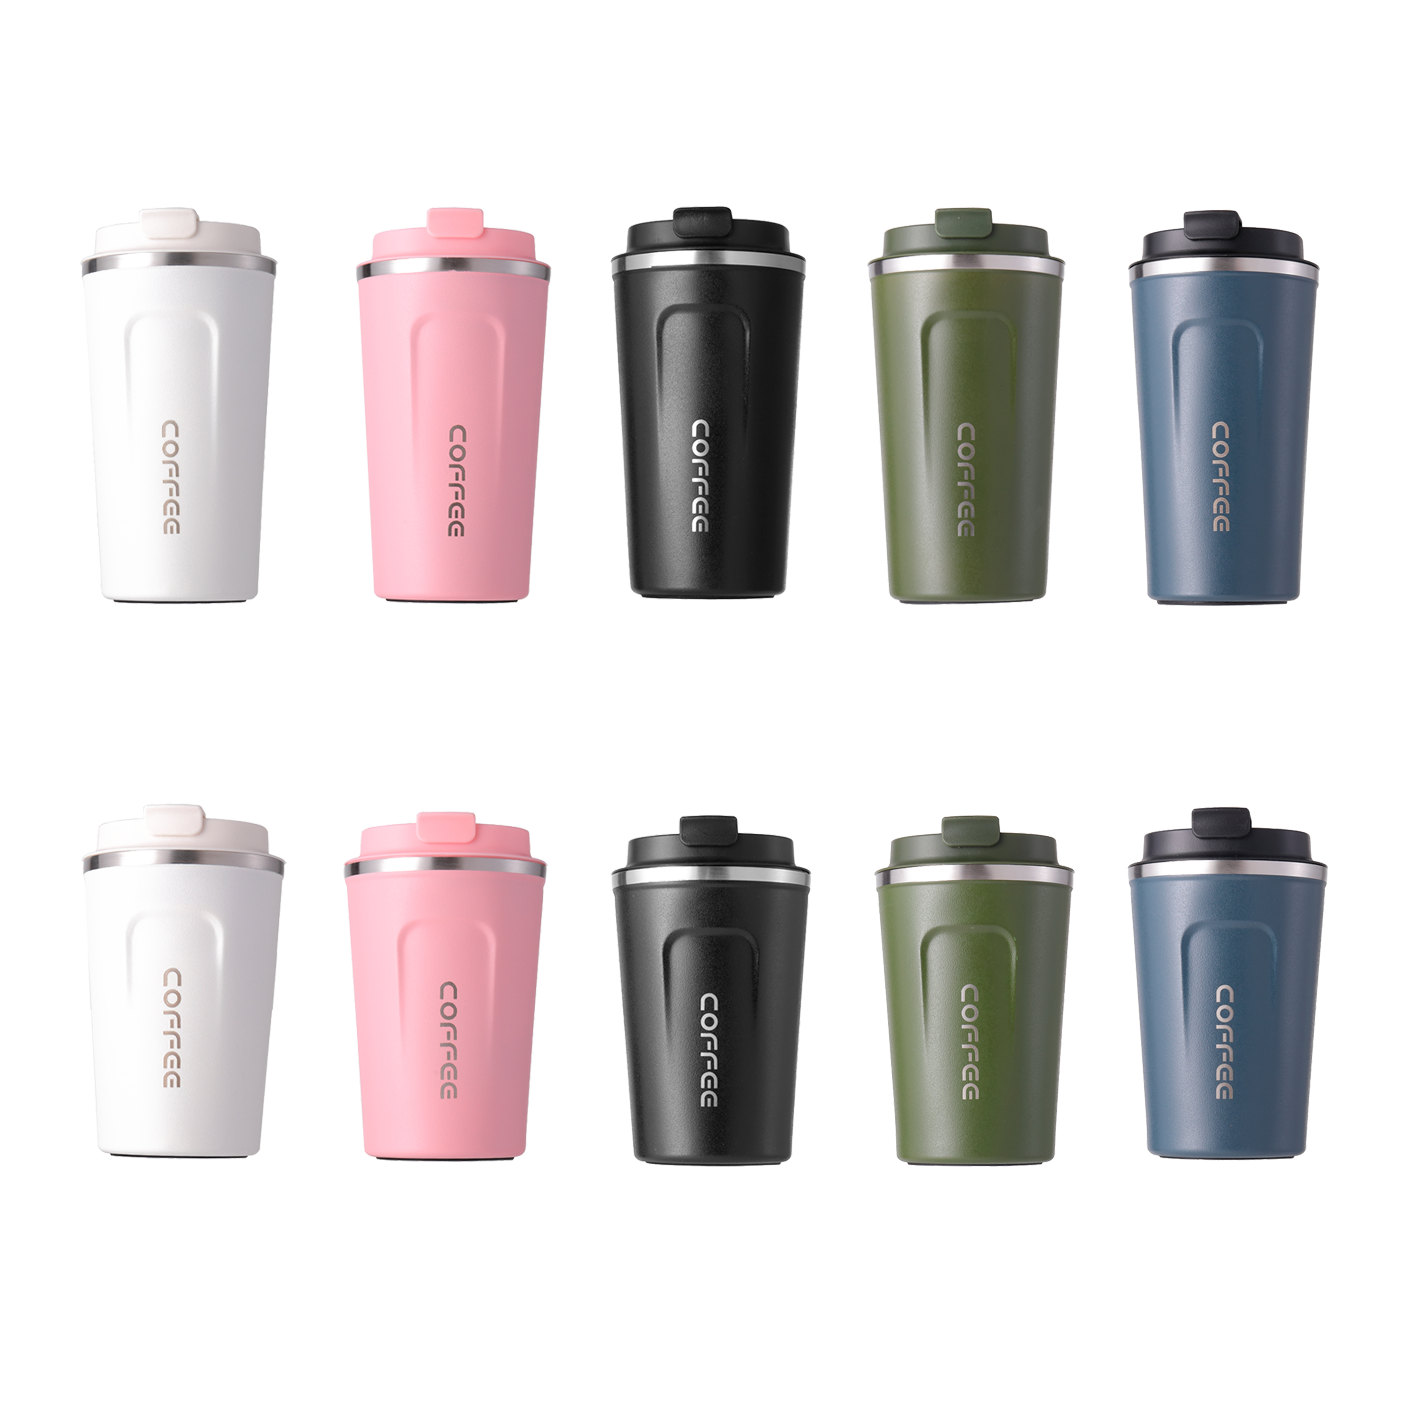 380ml 510ml Eco-friendly Double Walled Stainless Steel Travel Coffee Mug Vacuum Insulated Reusable Coffee Tumbler Cup